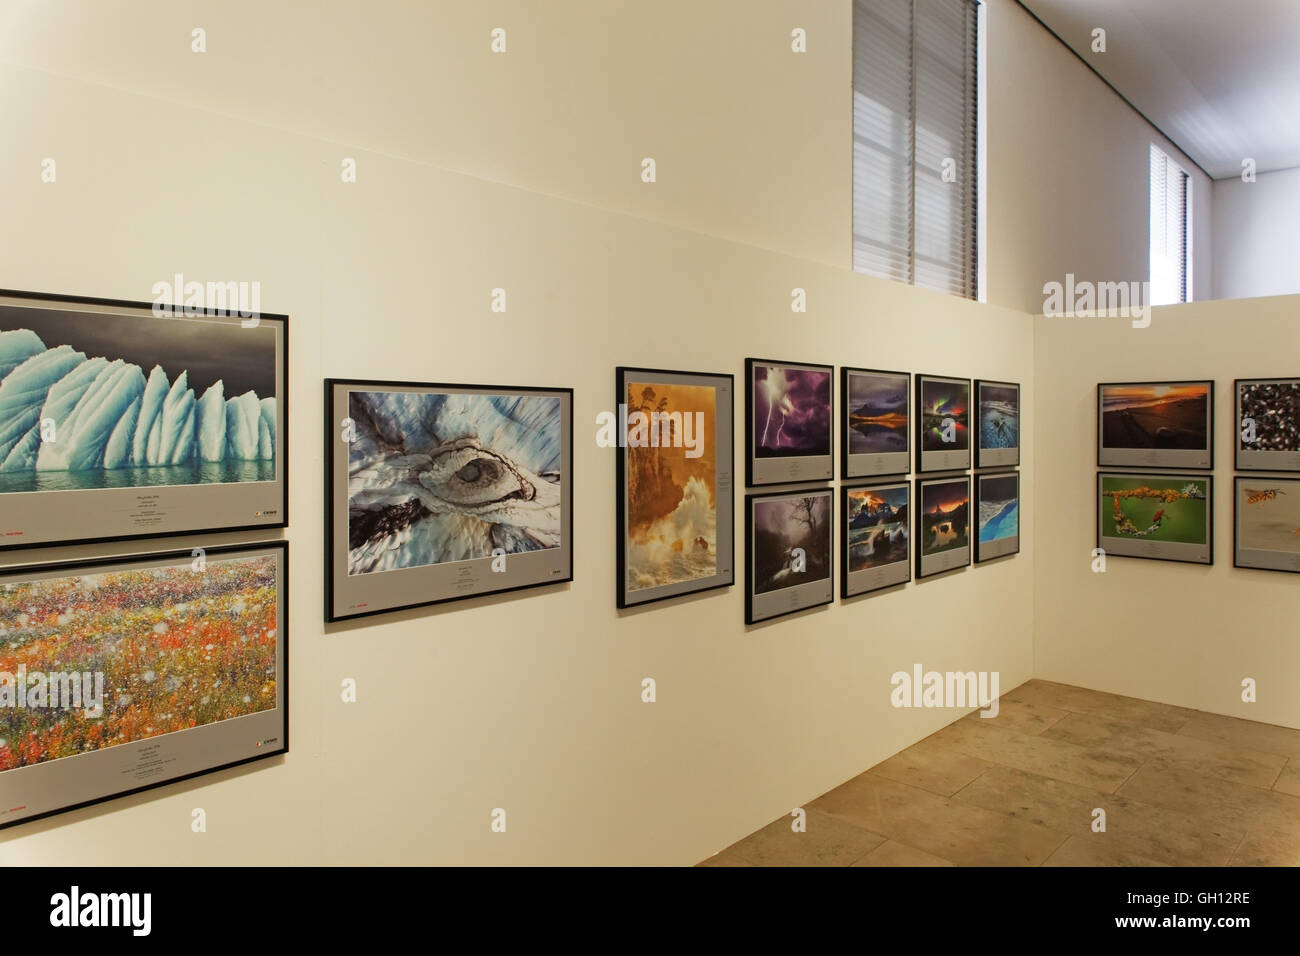 Glanzlichter 2016, Nature Photography exhibition shown at the Naturkunde Museum Karlsruhe, Germany - Stock Image